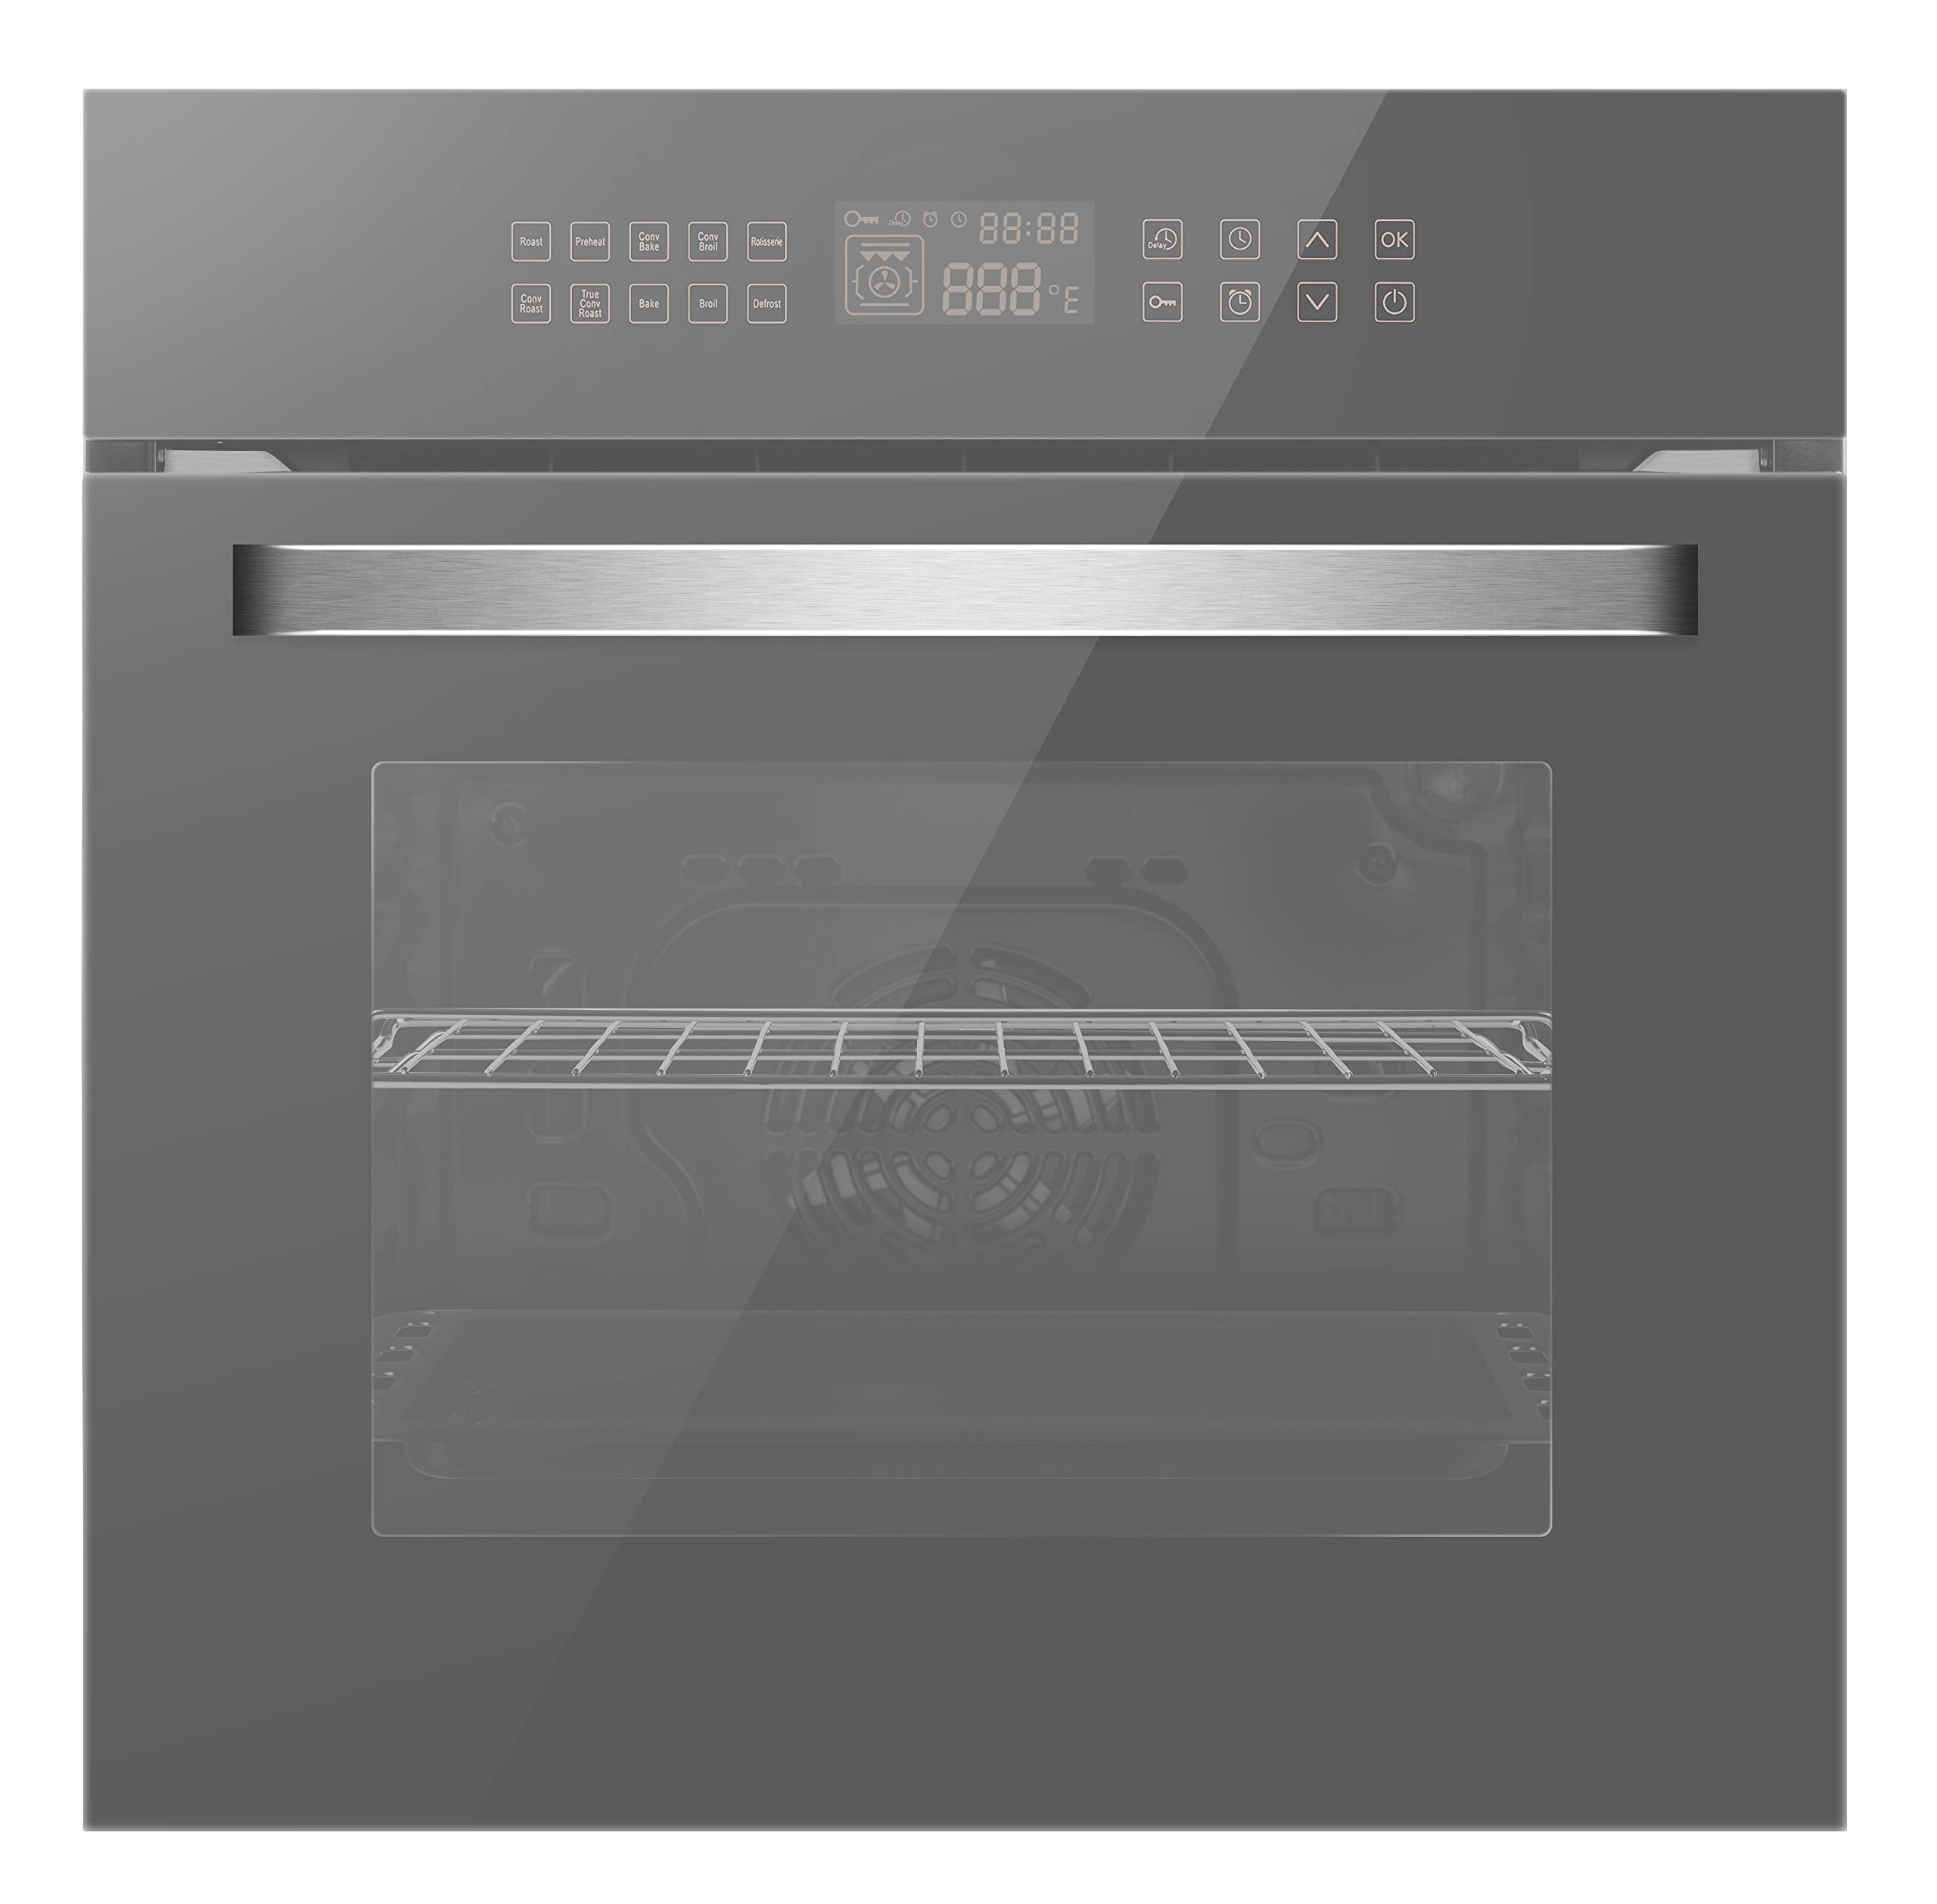 Empava 24'' Electric Single Wall Ovens Convection Fan 10 Cooking Functions Deluxe 360° ROTISSERIE with Sensitive Touch Control in Silver Mirror Glass EMPV-EOC17, C17, Stainless-Steel by Empava